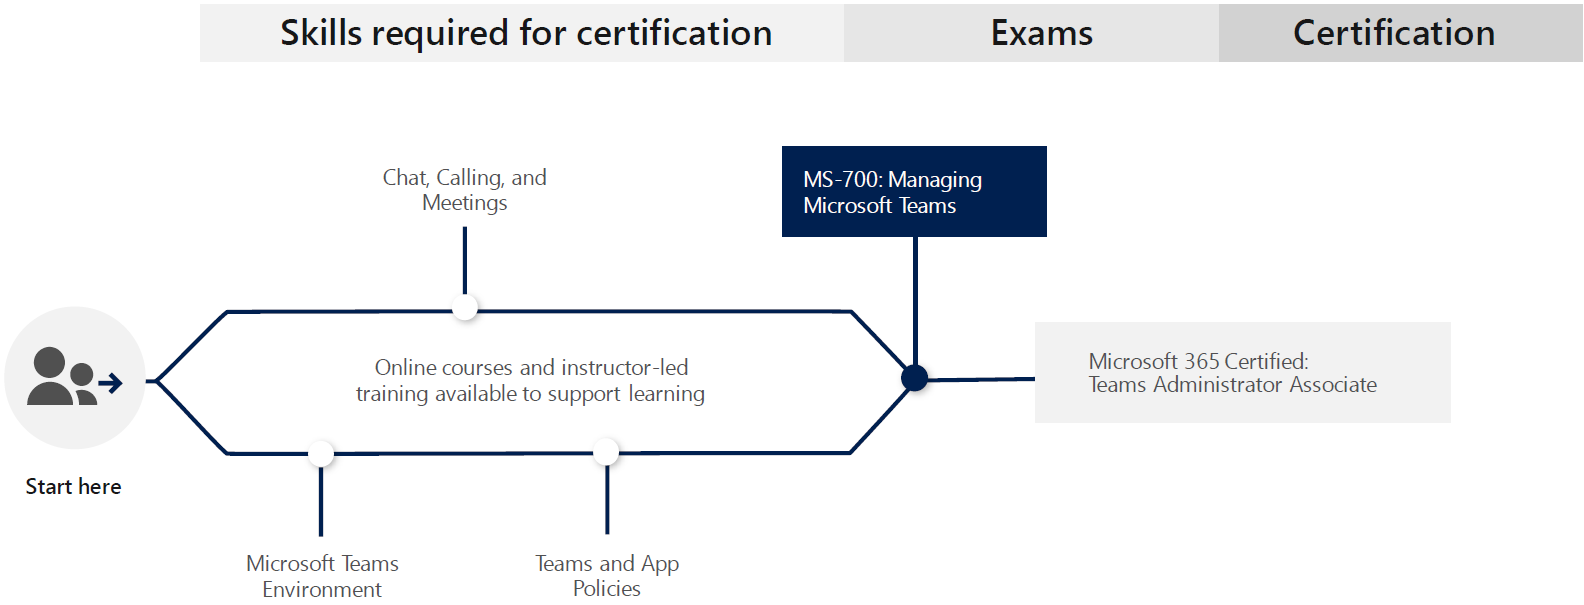 Learning Path for Microsoft 365 Certified: Teams Administrator Associate